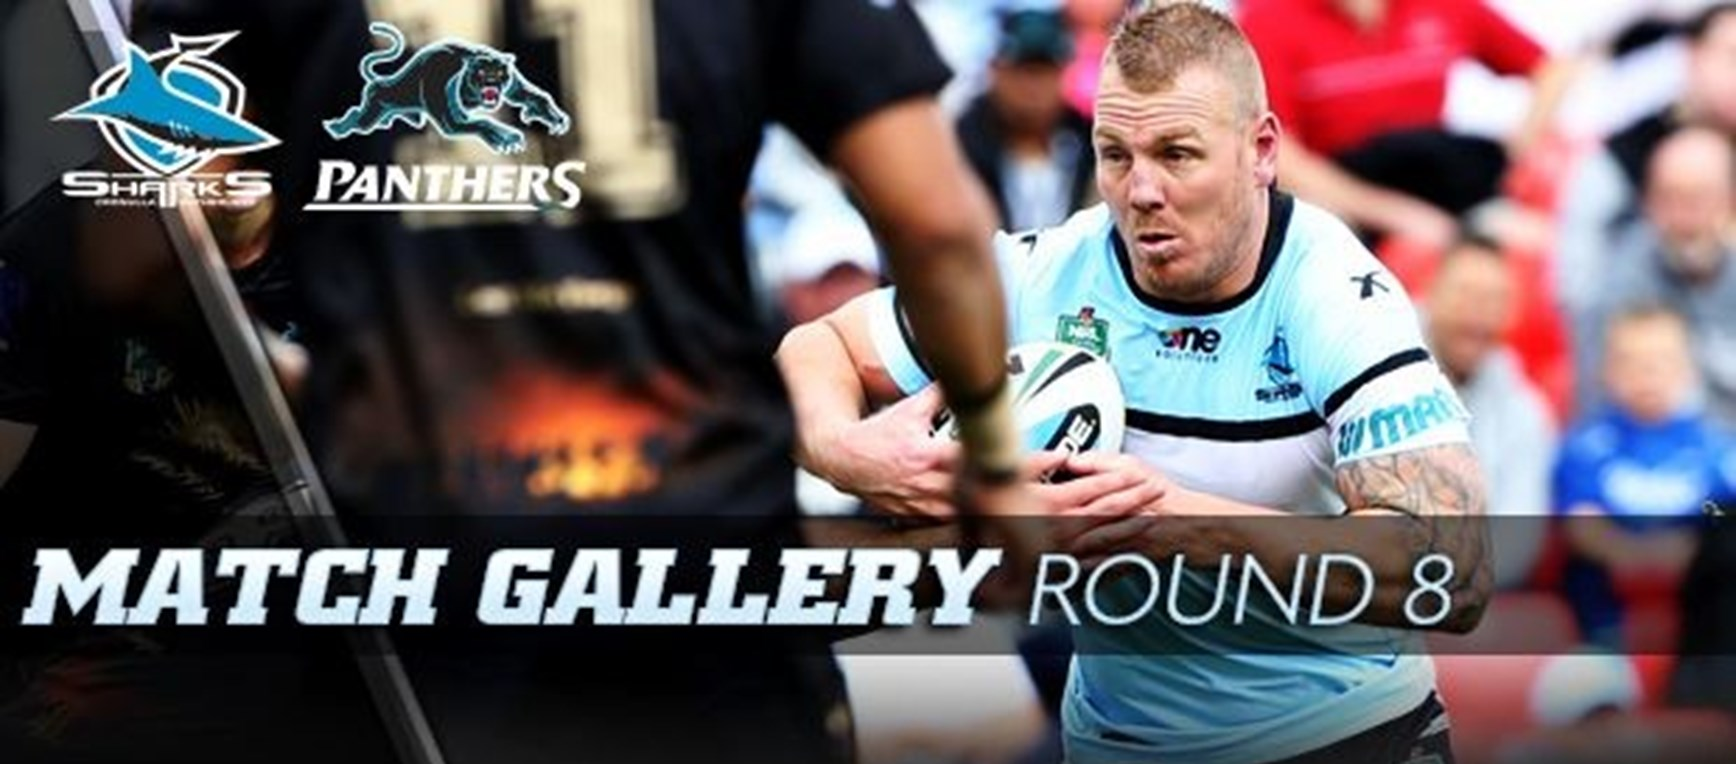 Rd 8 Match Gallery - Panthers v Sharks